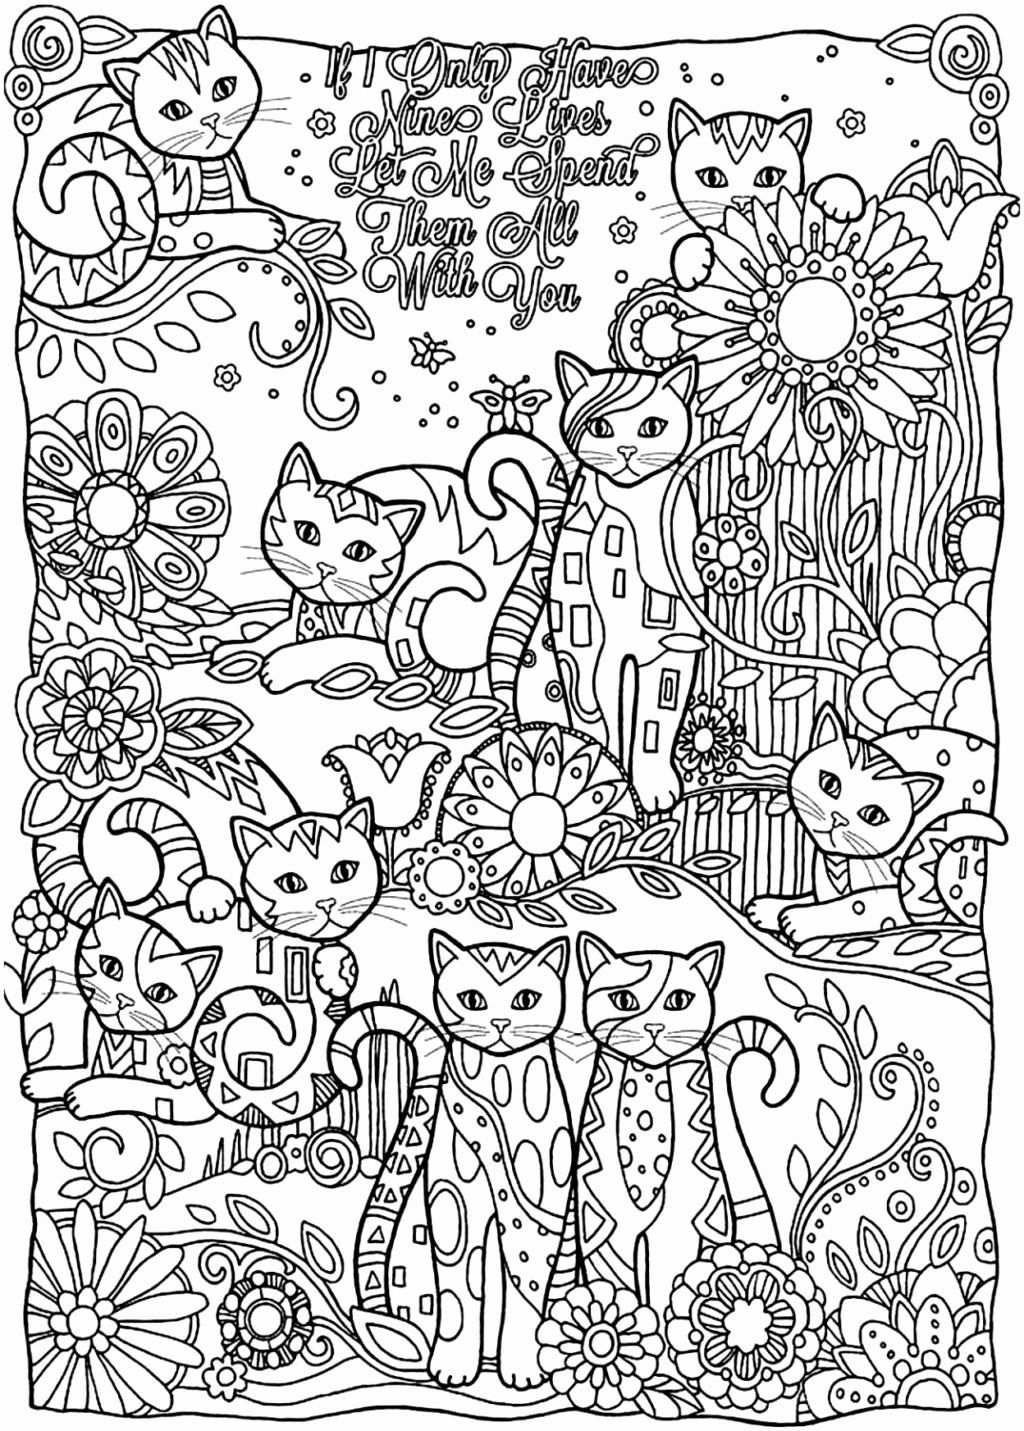 Mickey Mouse Coloring Books Bulk Elegant Coloring Books Page 65 52 Incredible Free Download Coloring